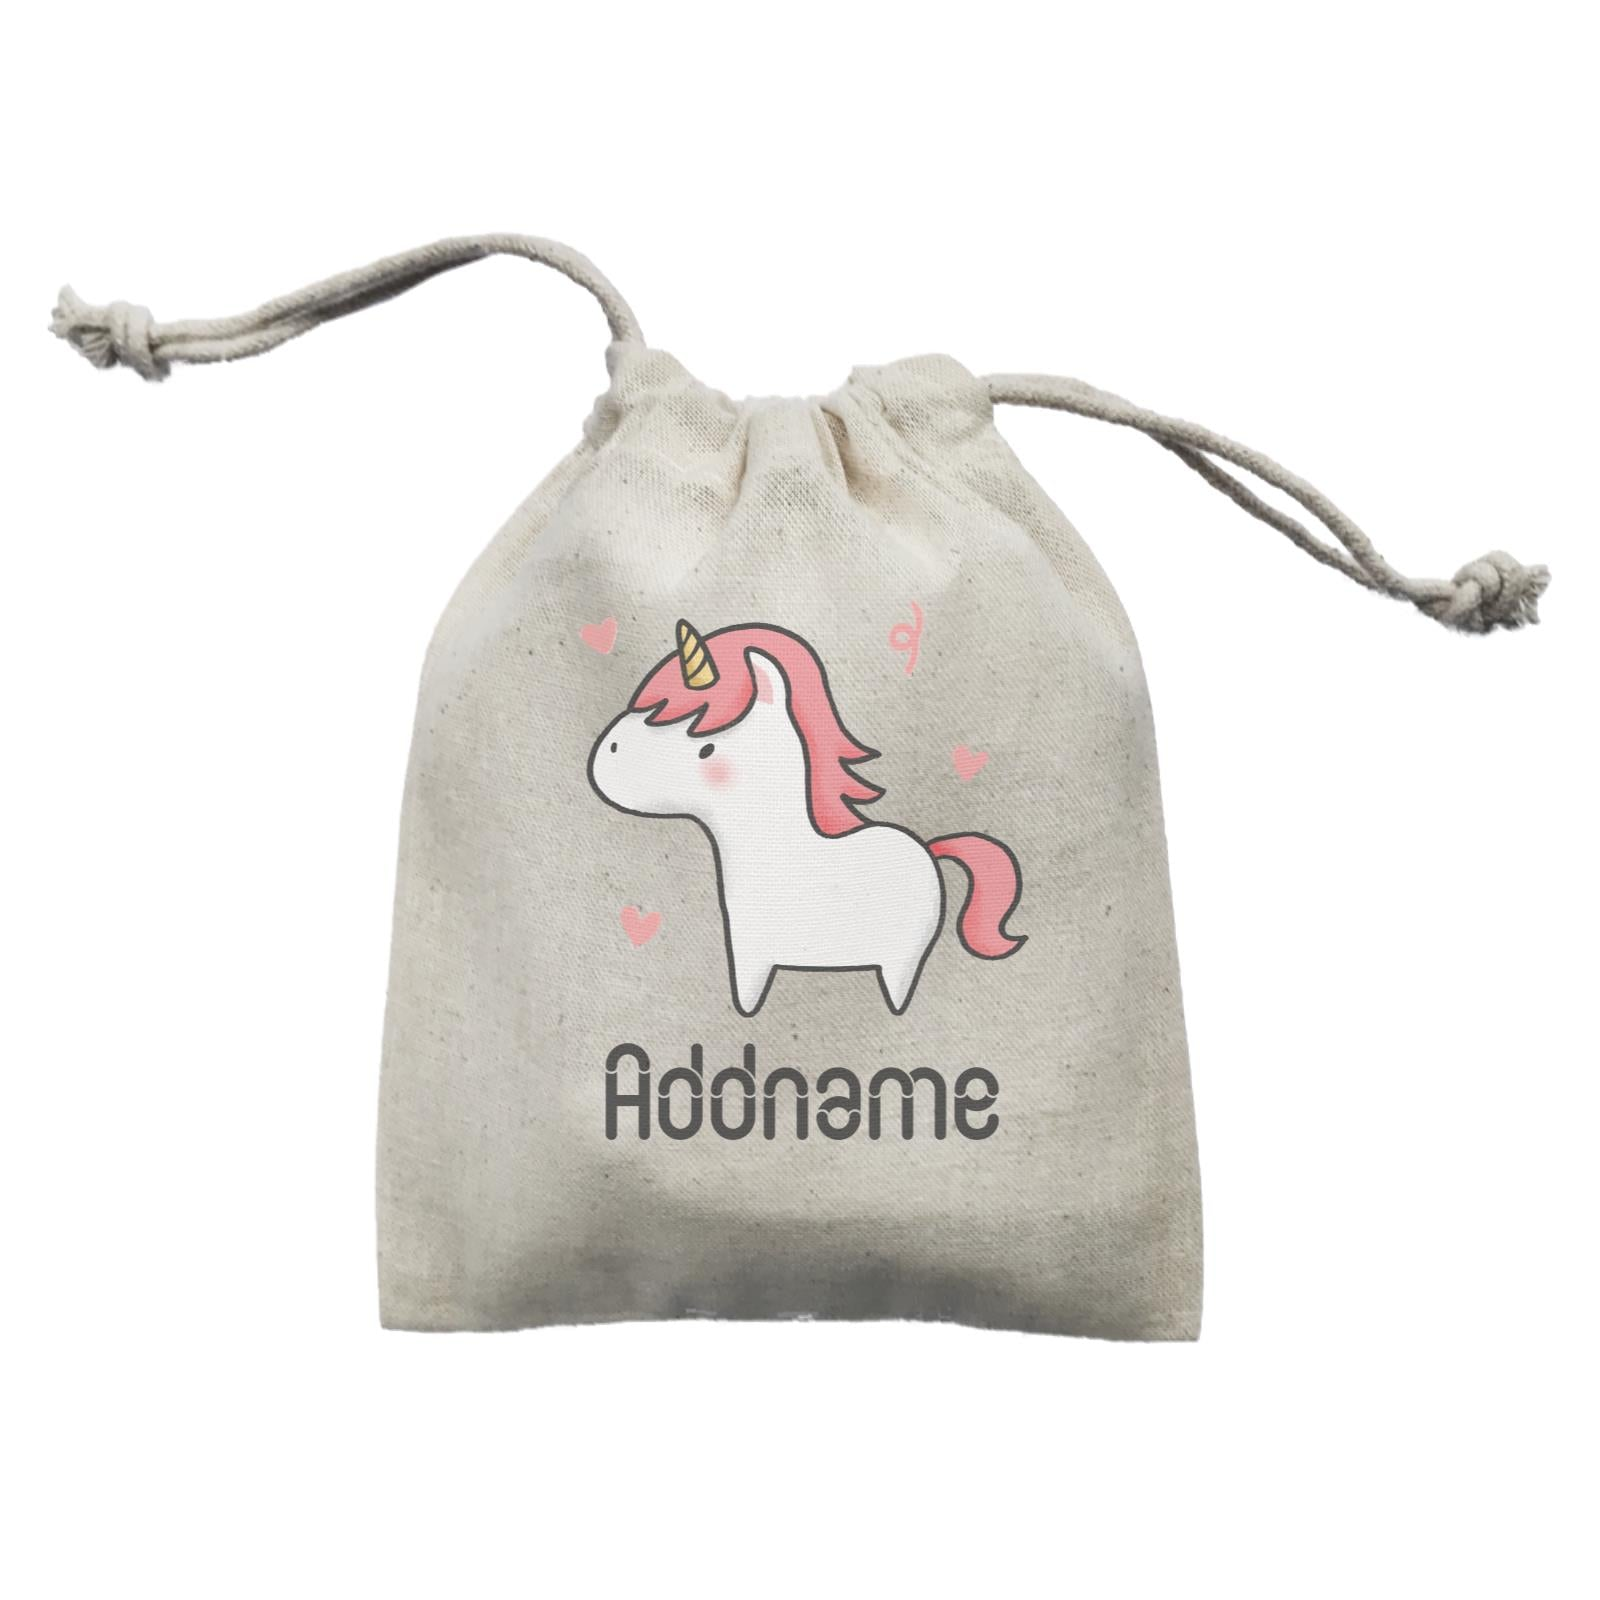 Cute Hand Drawn Style Unicorn Addname Mini Accessories Mini Pouch